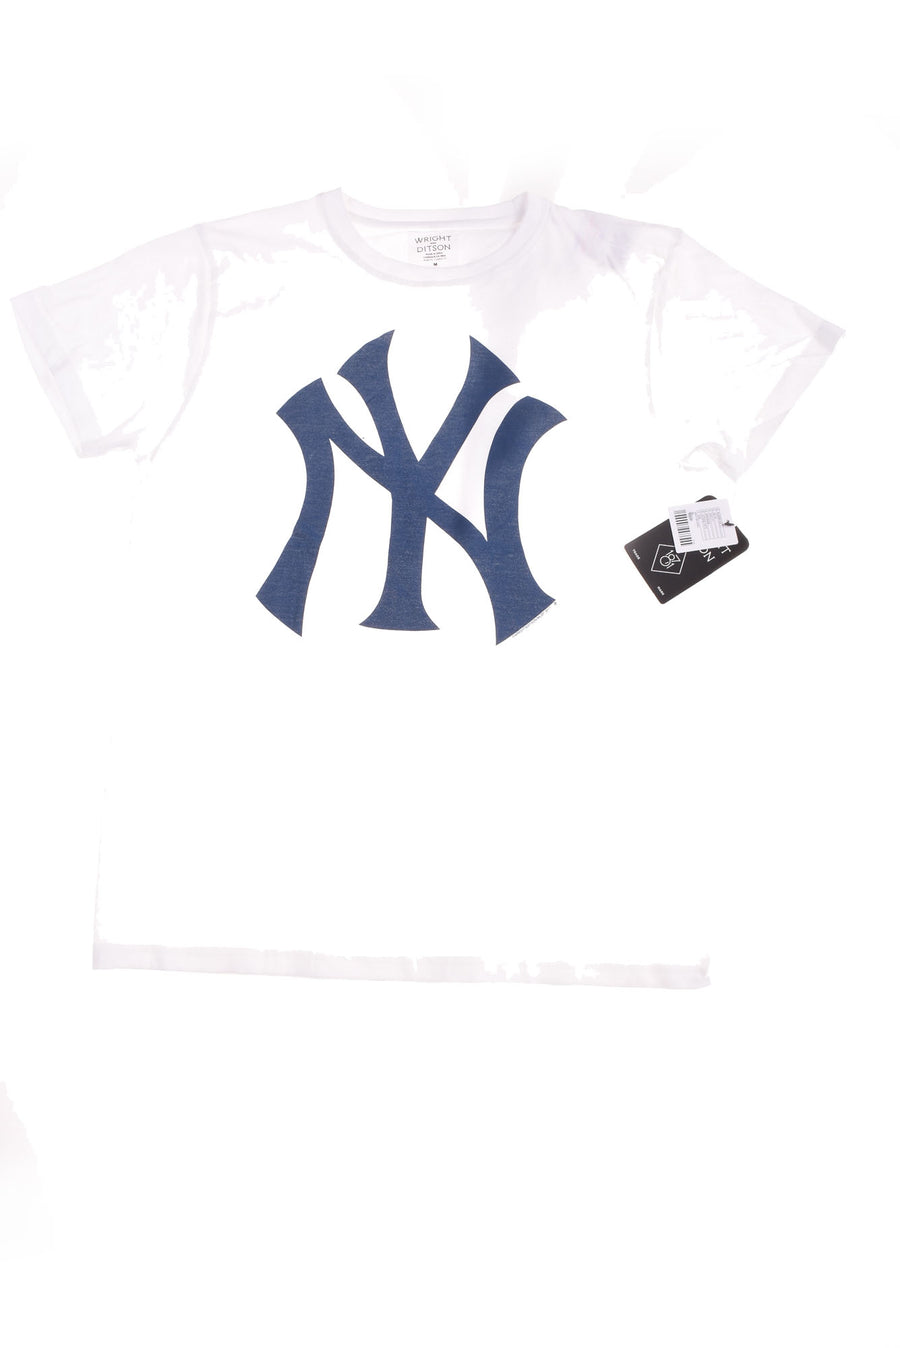 NEW Wright & Ditson Men's New York Yankees Shirt Medium White & Blue